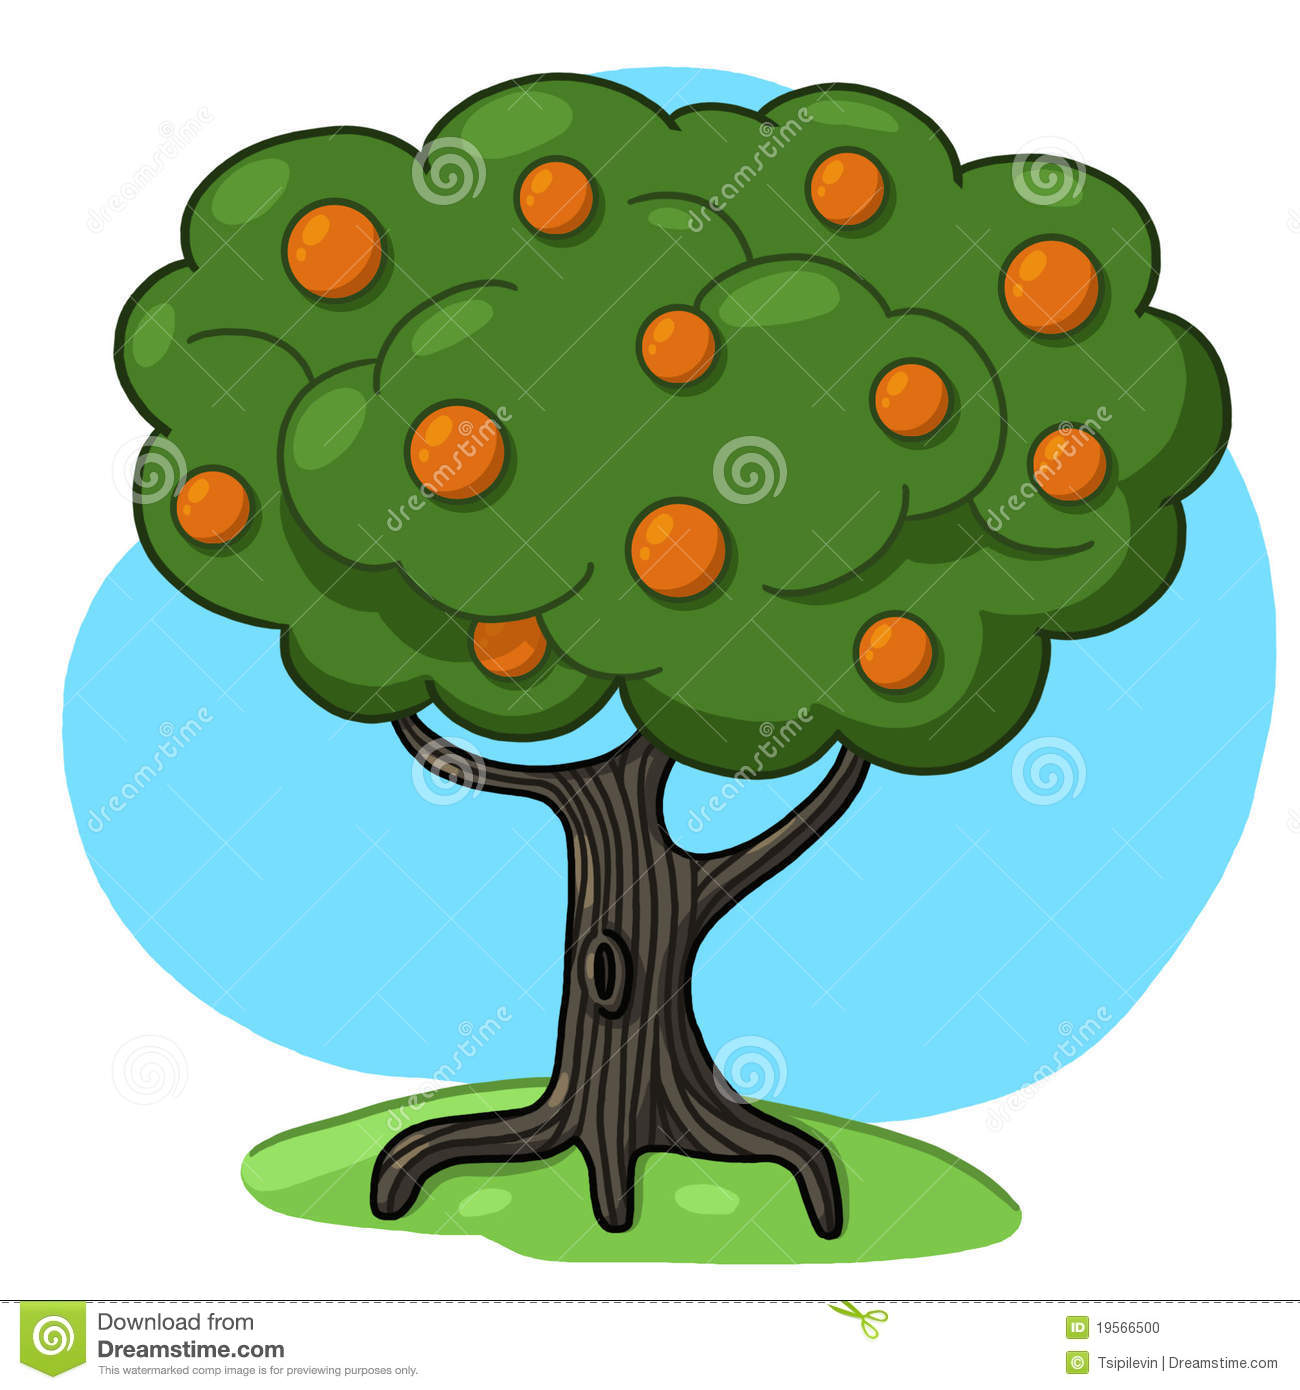 Orange Tree Illustration Stock Photo - Image: 19566500